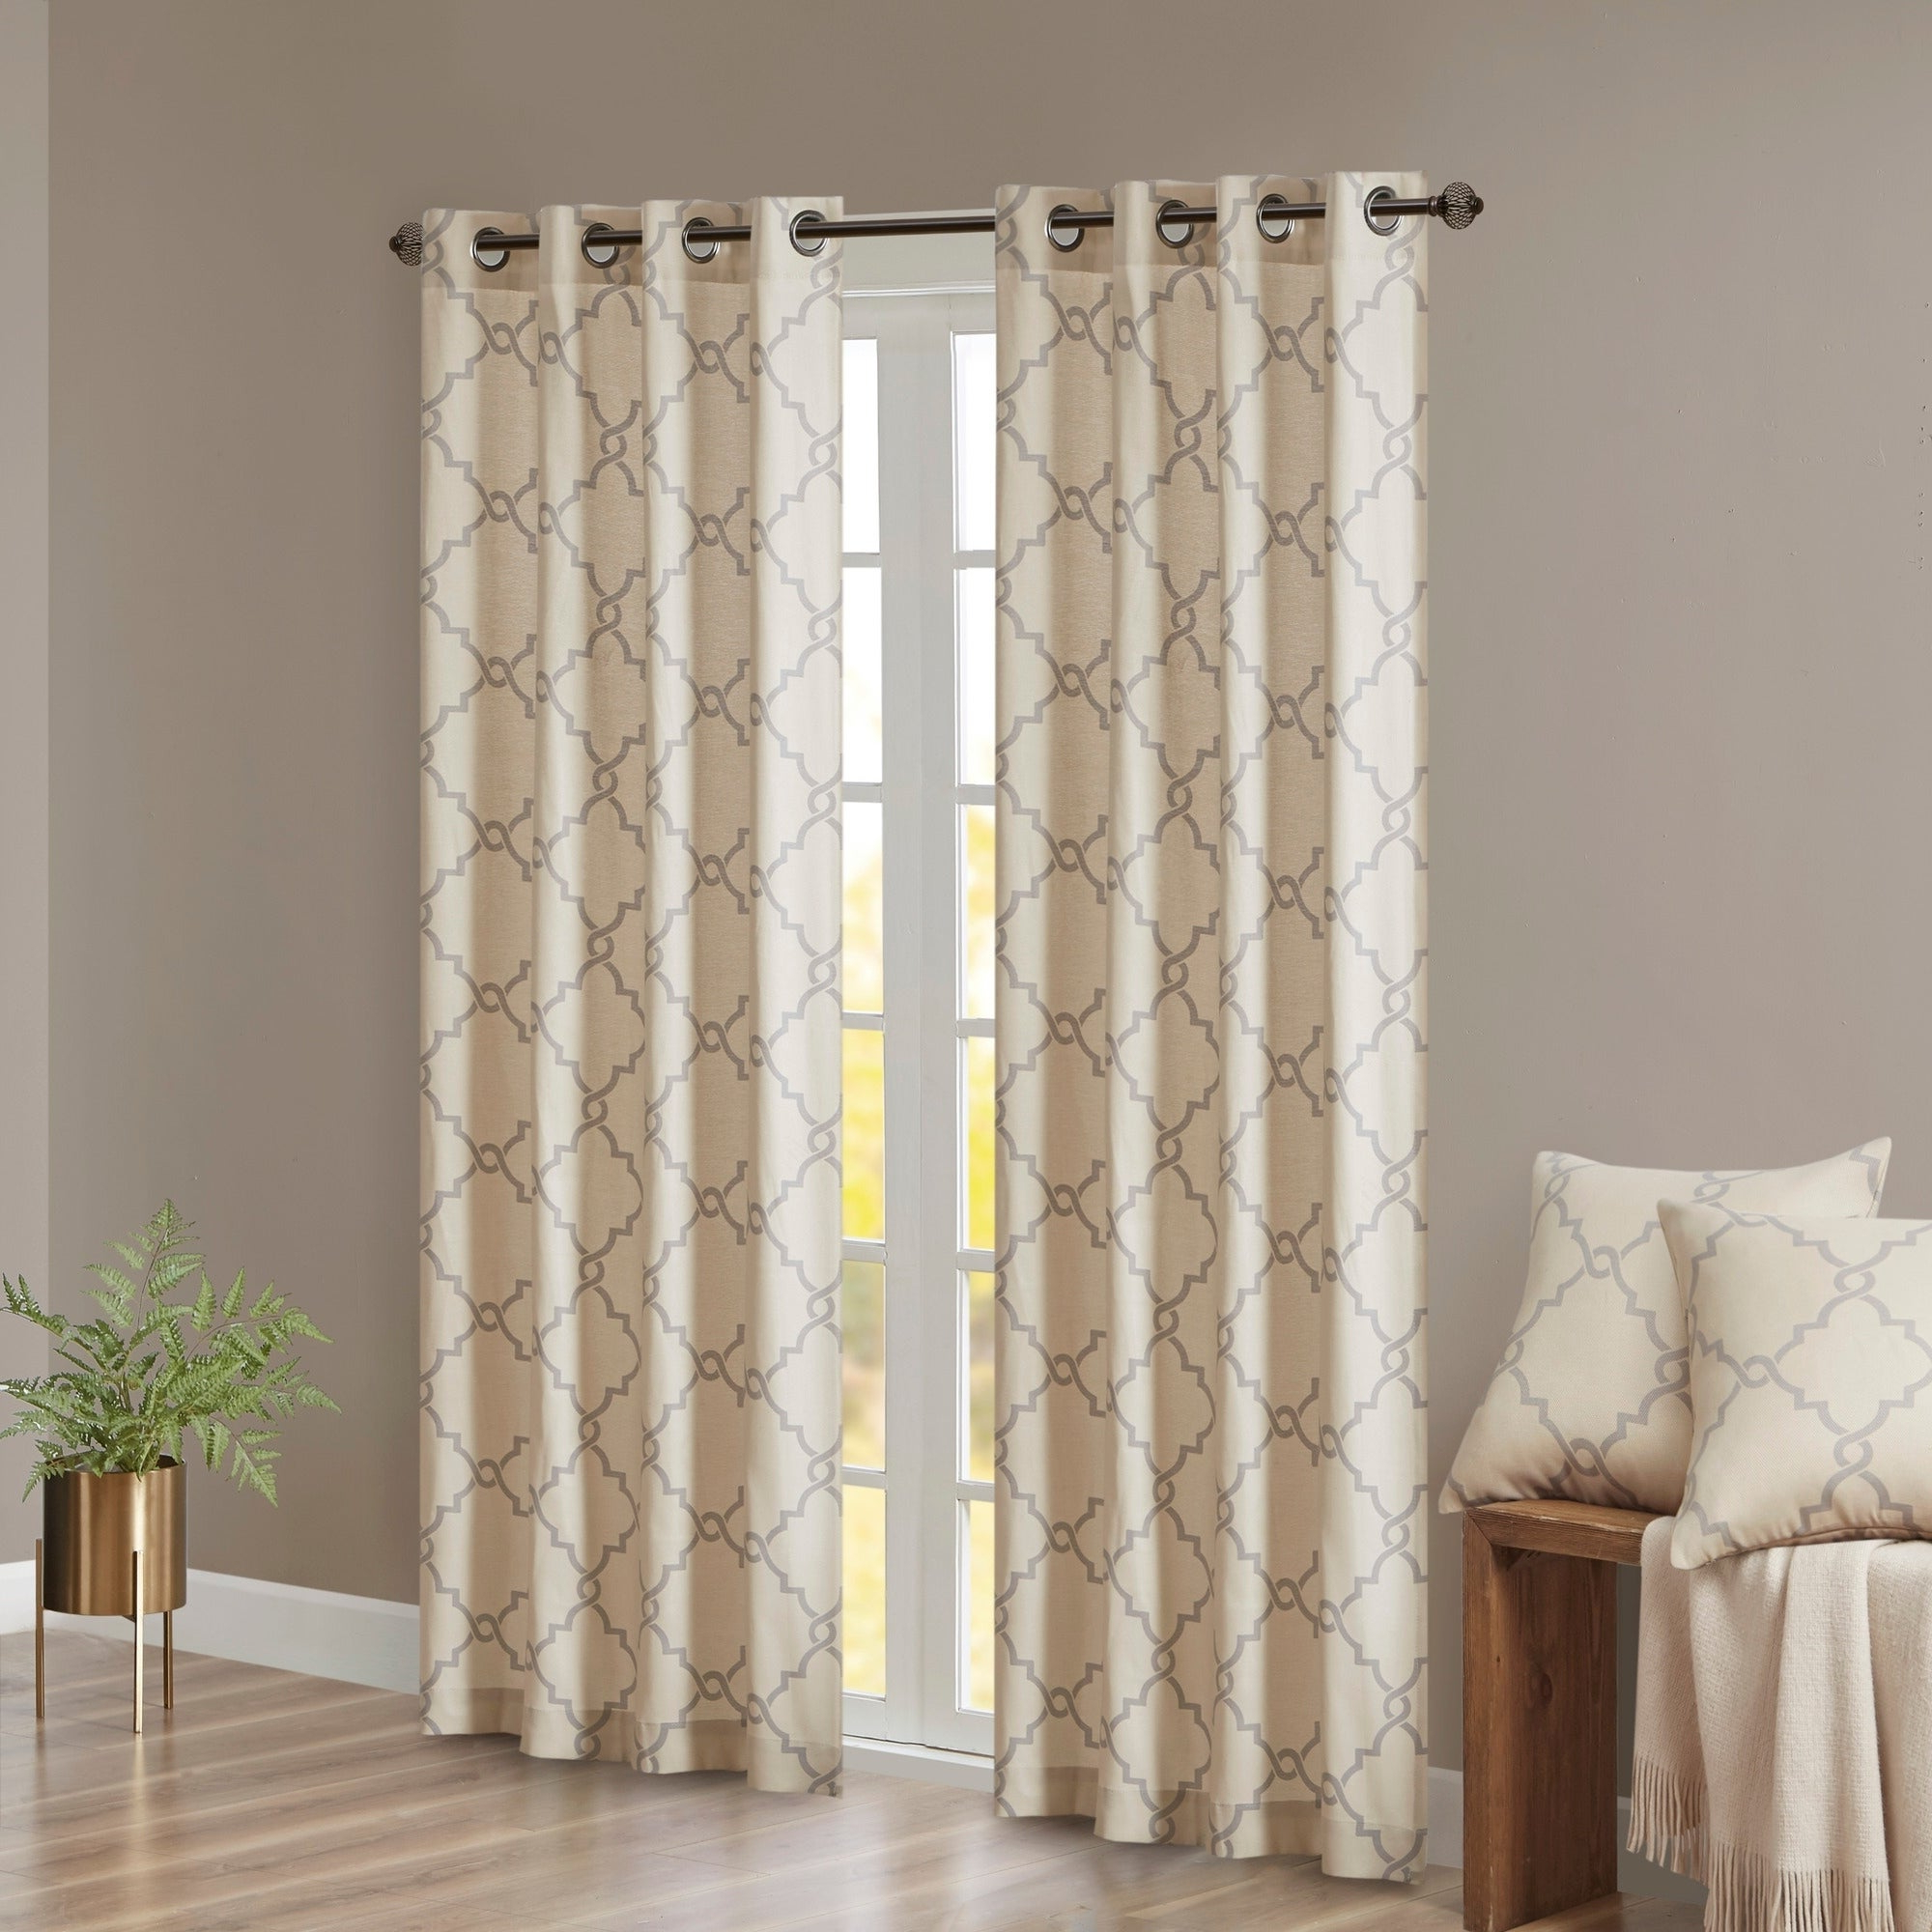 Well Known Madison Park Westmont Fretwork Print Pattern Single Curtain Panel In Fretwork Print Pattern Single Curtain Panels (View 18 of 20)